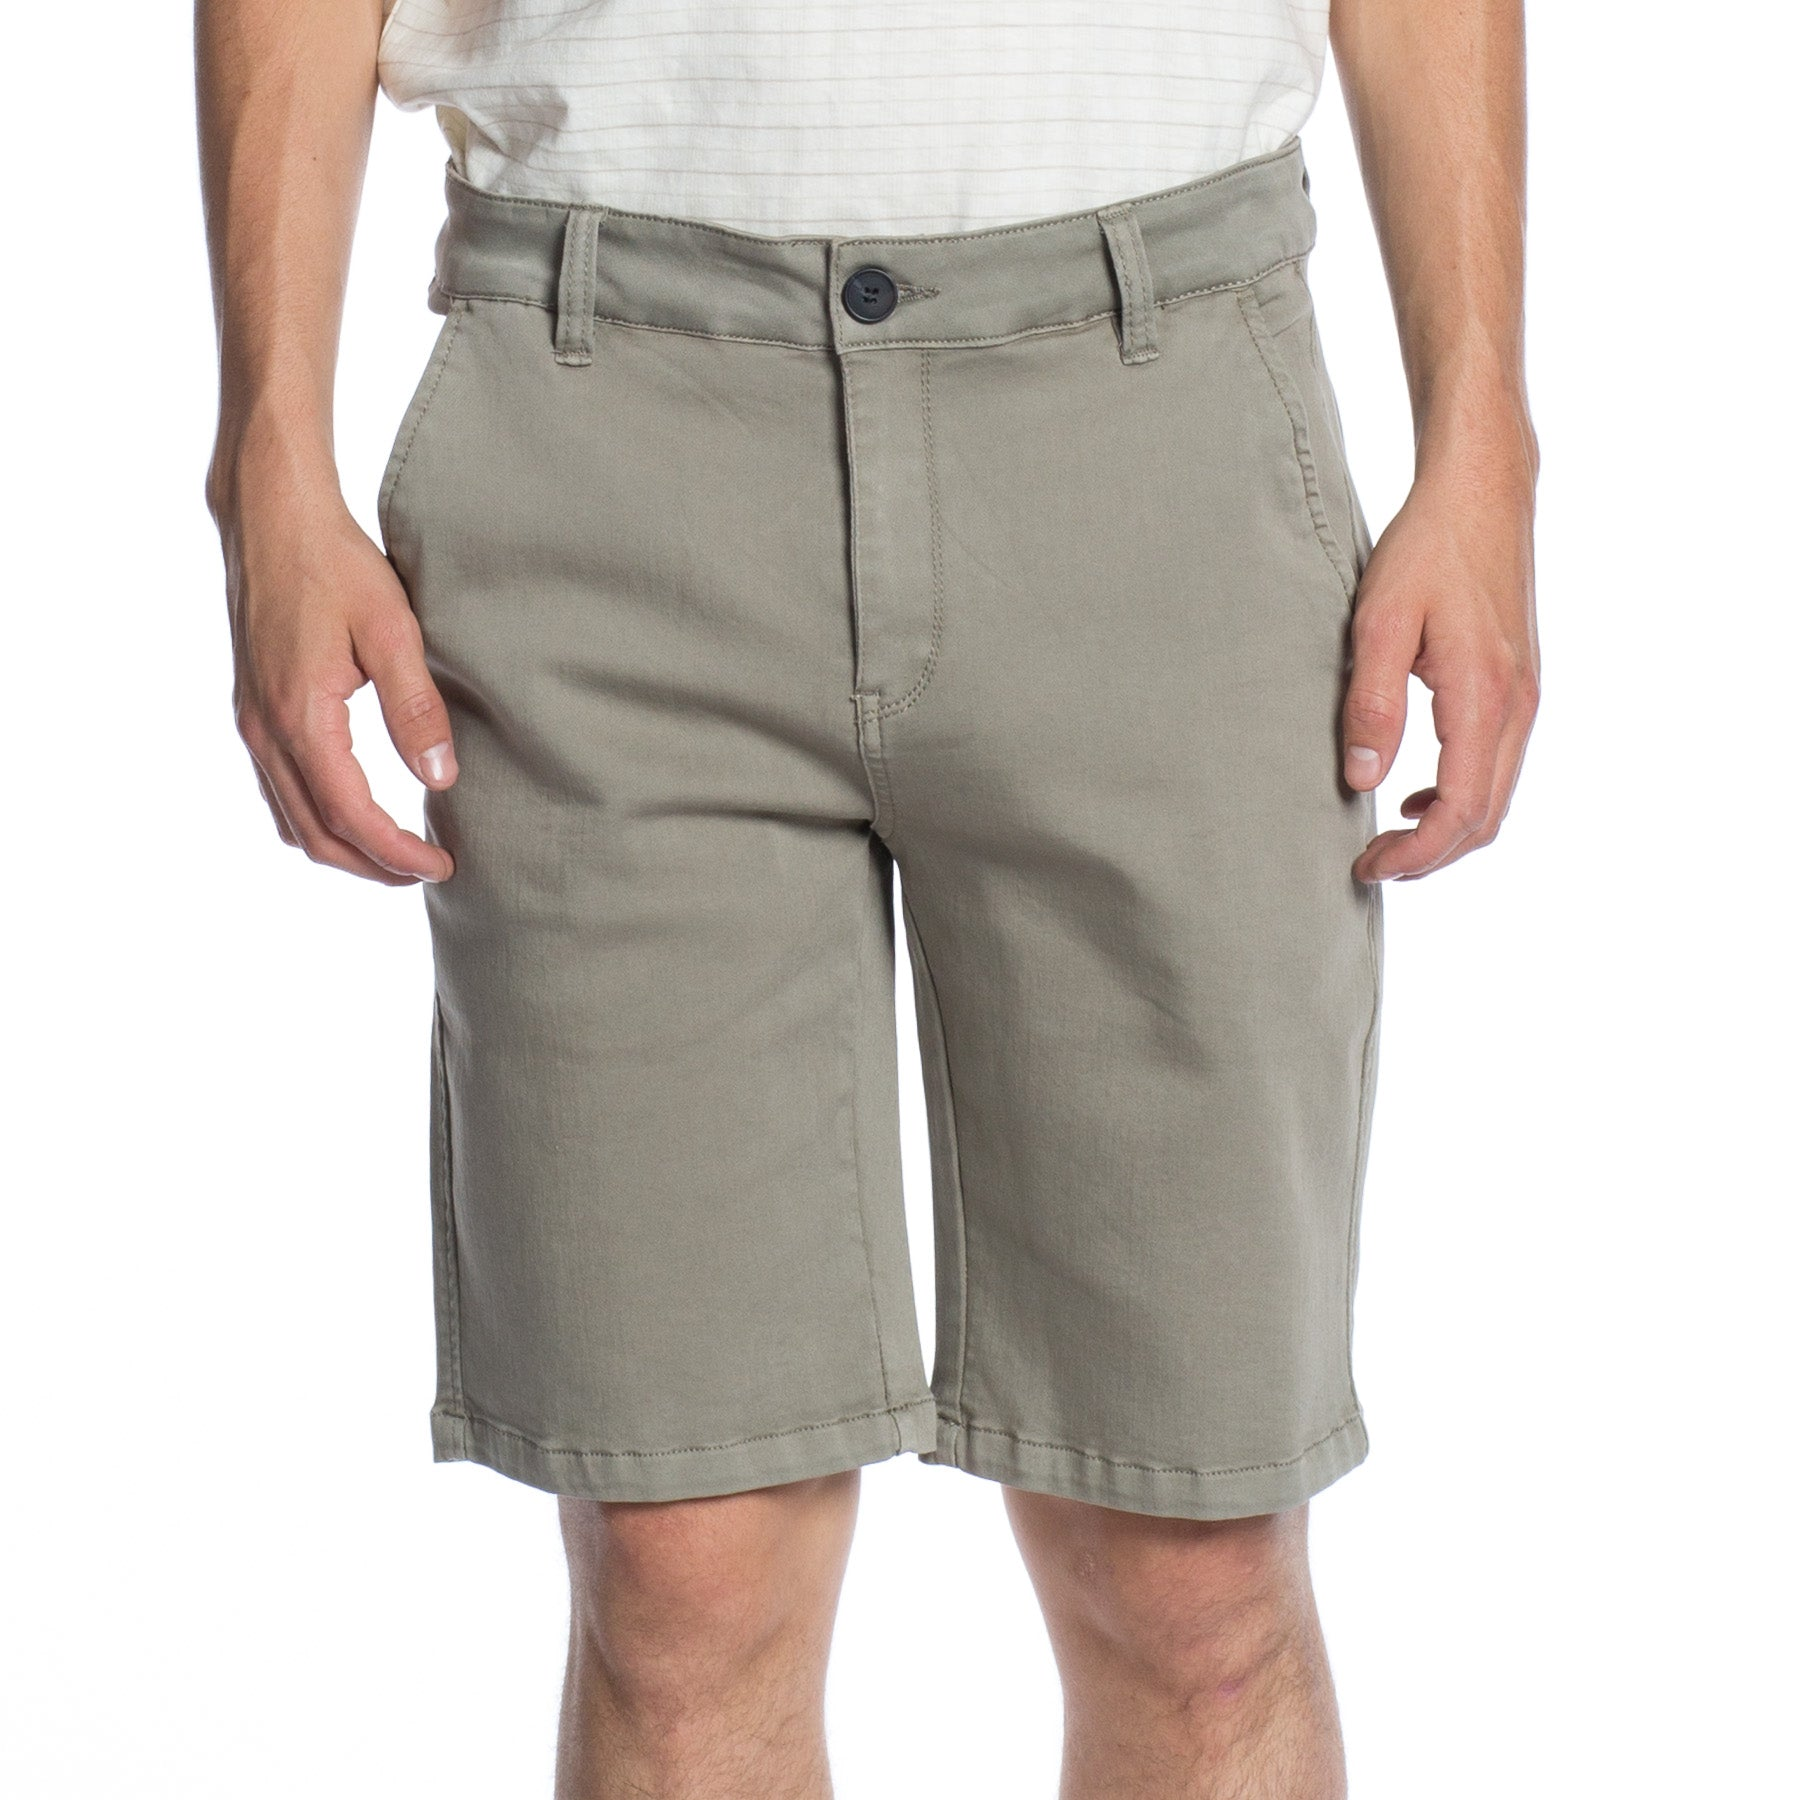 Bounce Short - Sand - Ezekiel Clothing